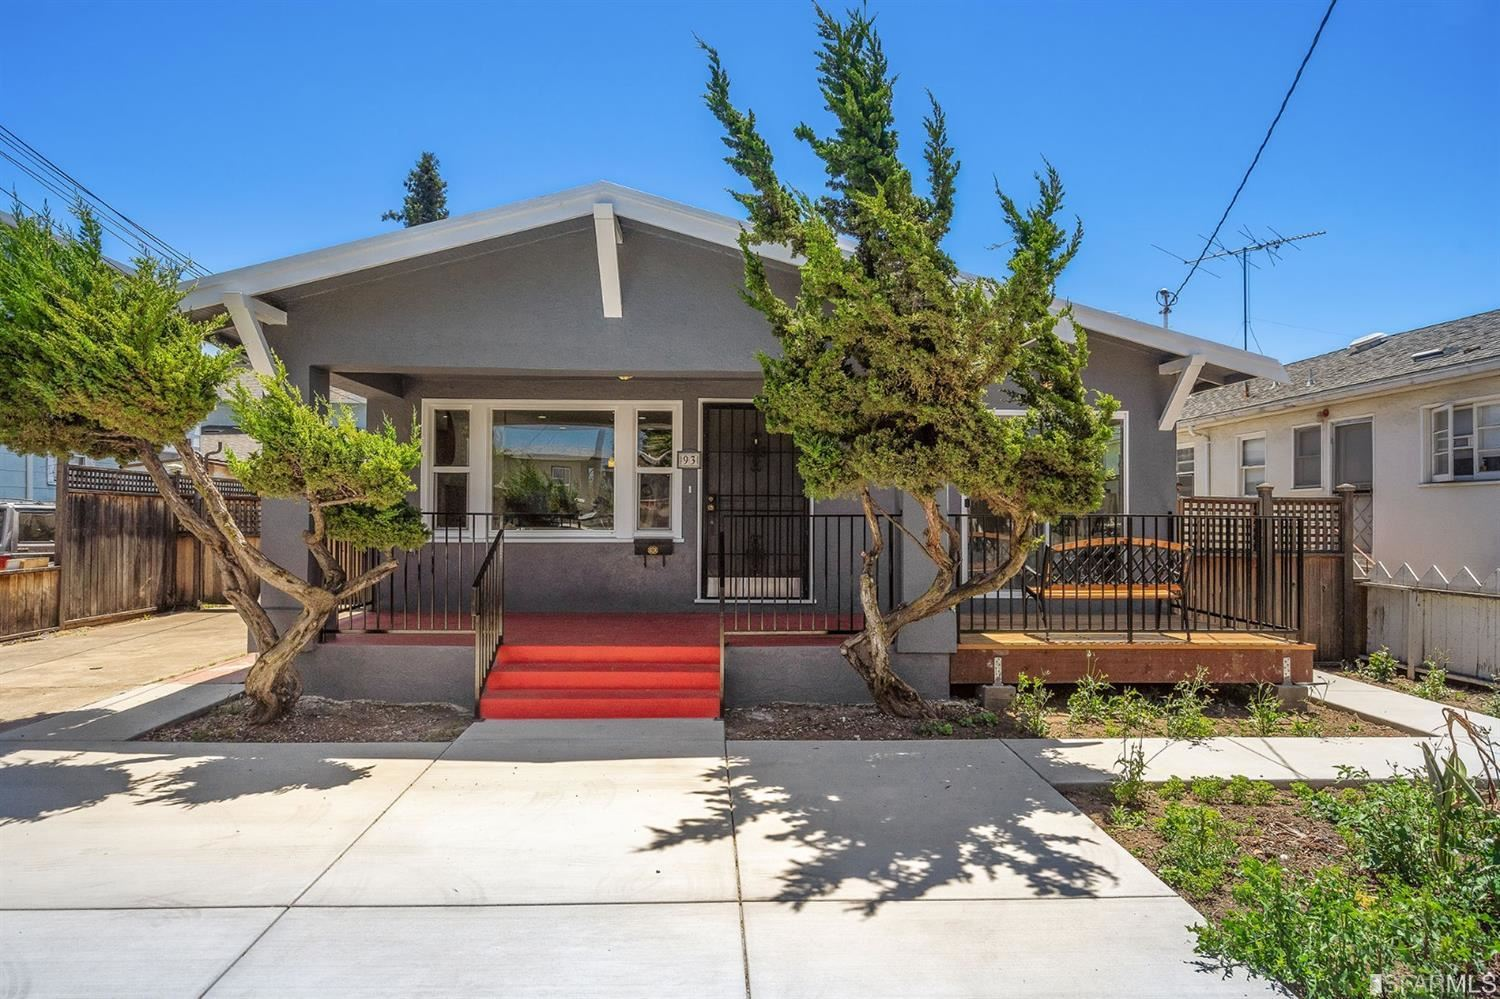 93 Williams Street, San Leandro, CA 94577 - #: 500551